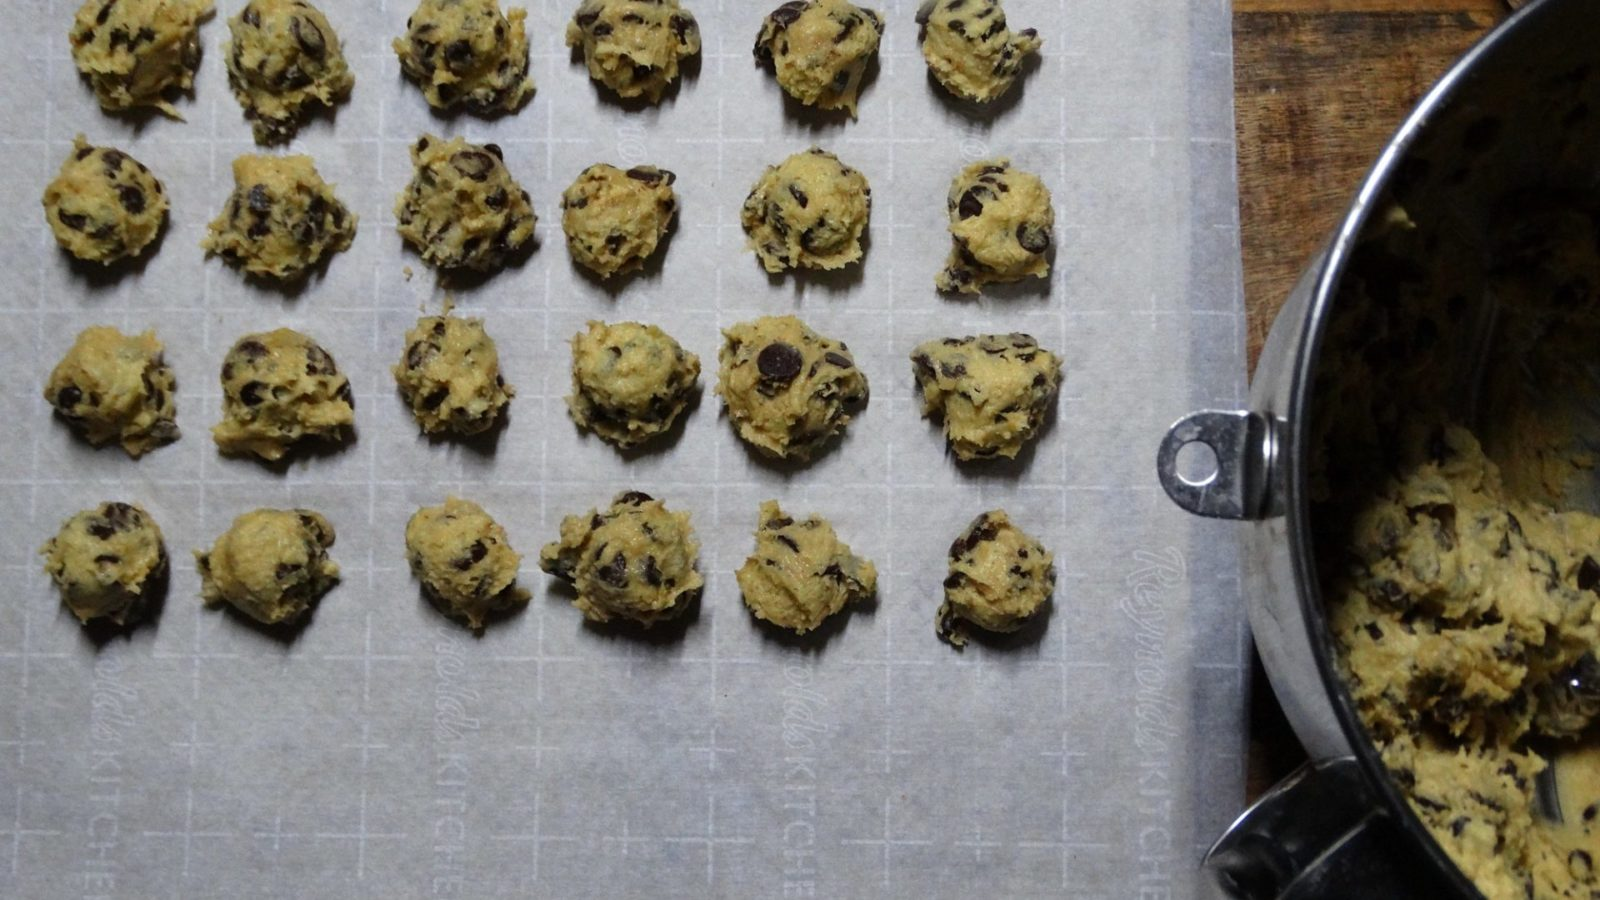 Delicious and easy to make, these low carb, keto and thm friendly chocolate chip cookies are sugar free, gluten free, high in fiber and amazingly delicious! #KetoChocolateChipCookie